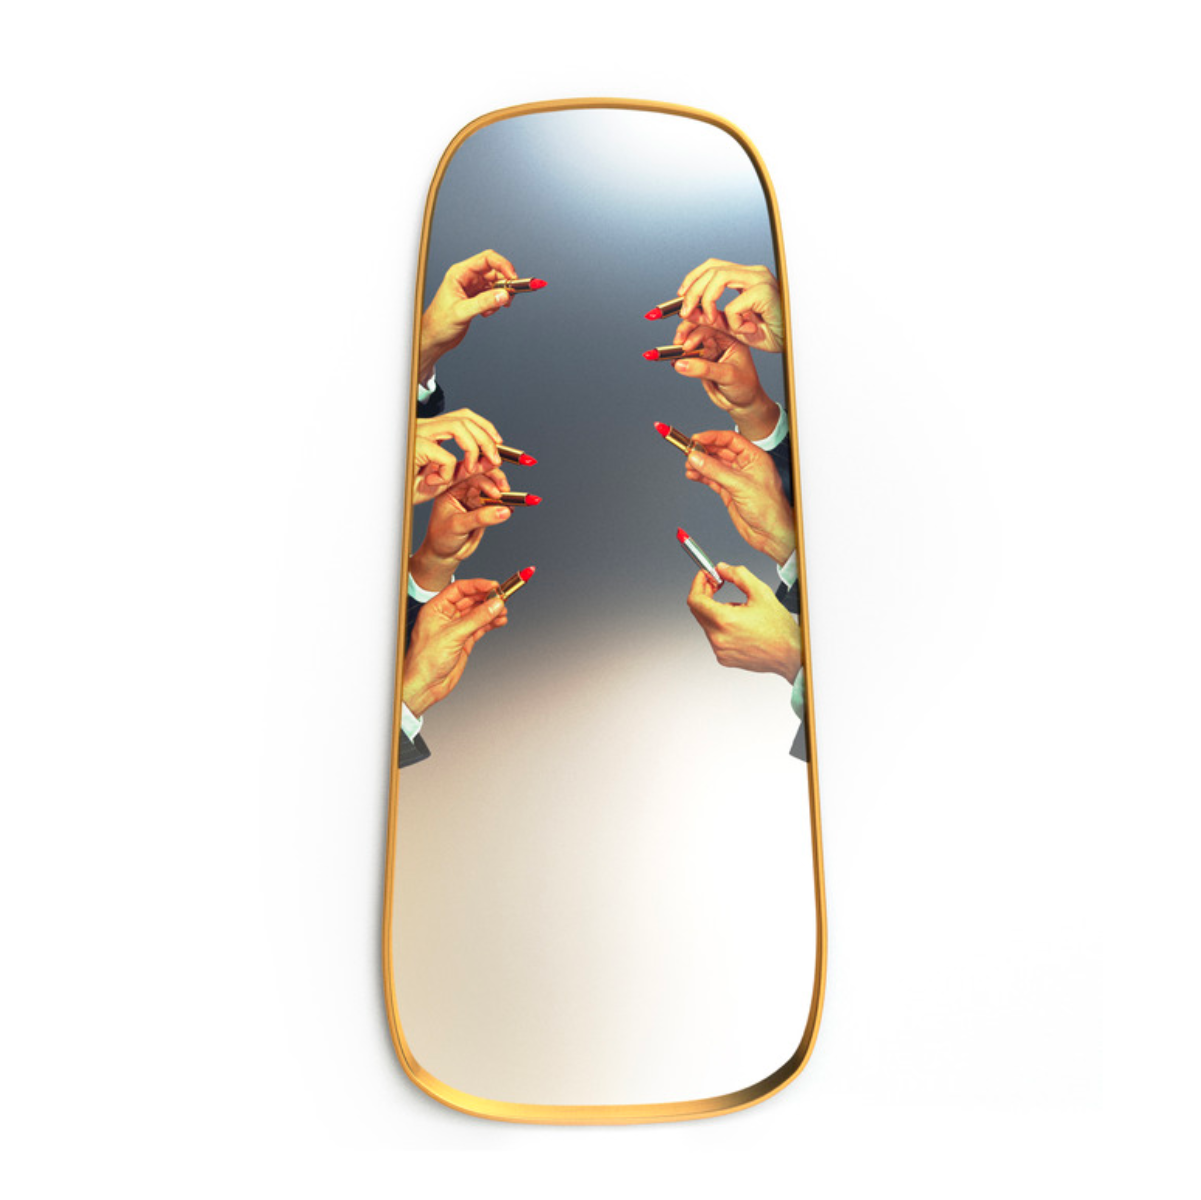 Seletti Toiletpaper wall mirror large